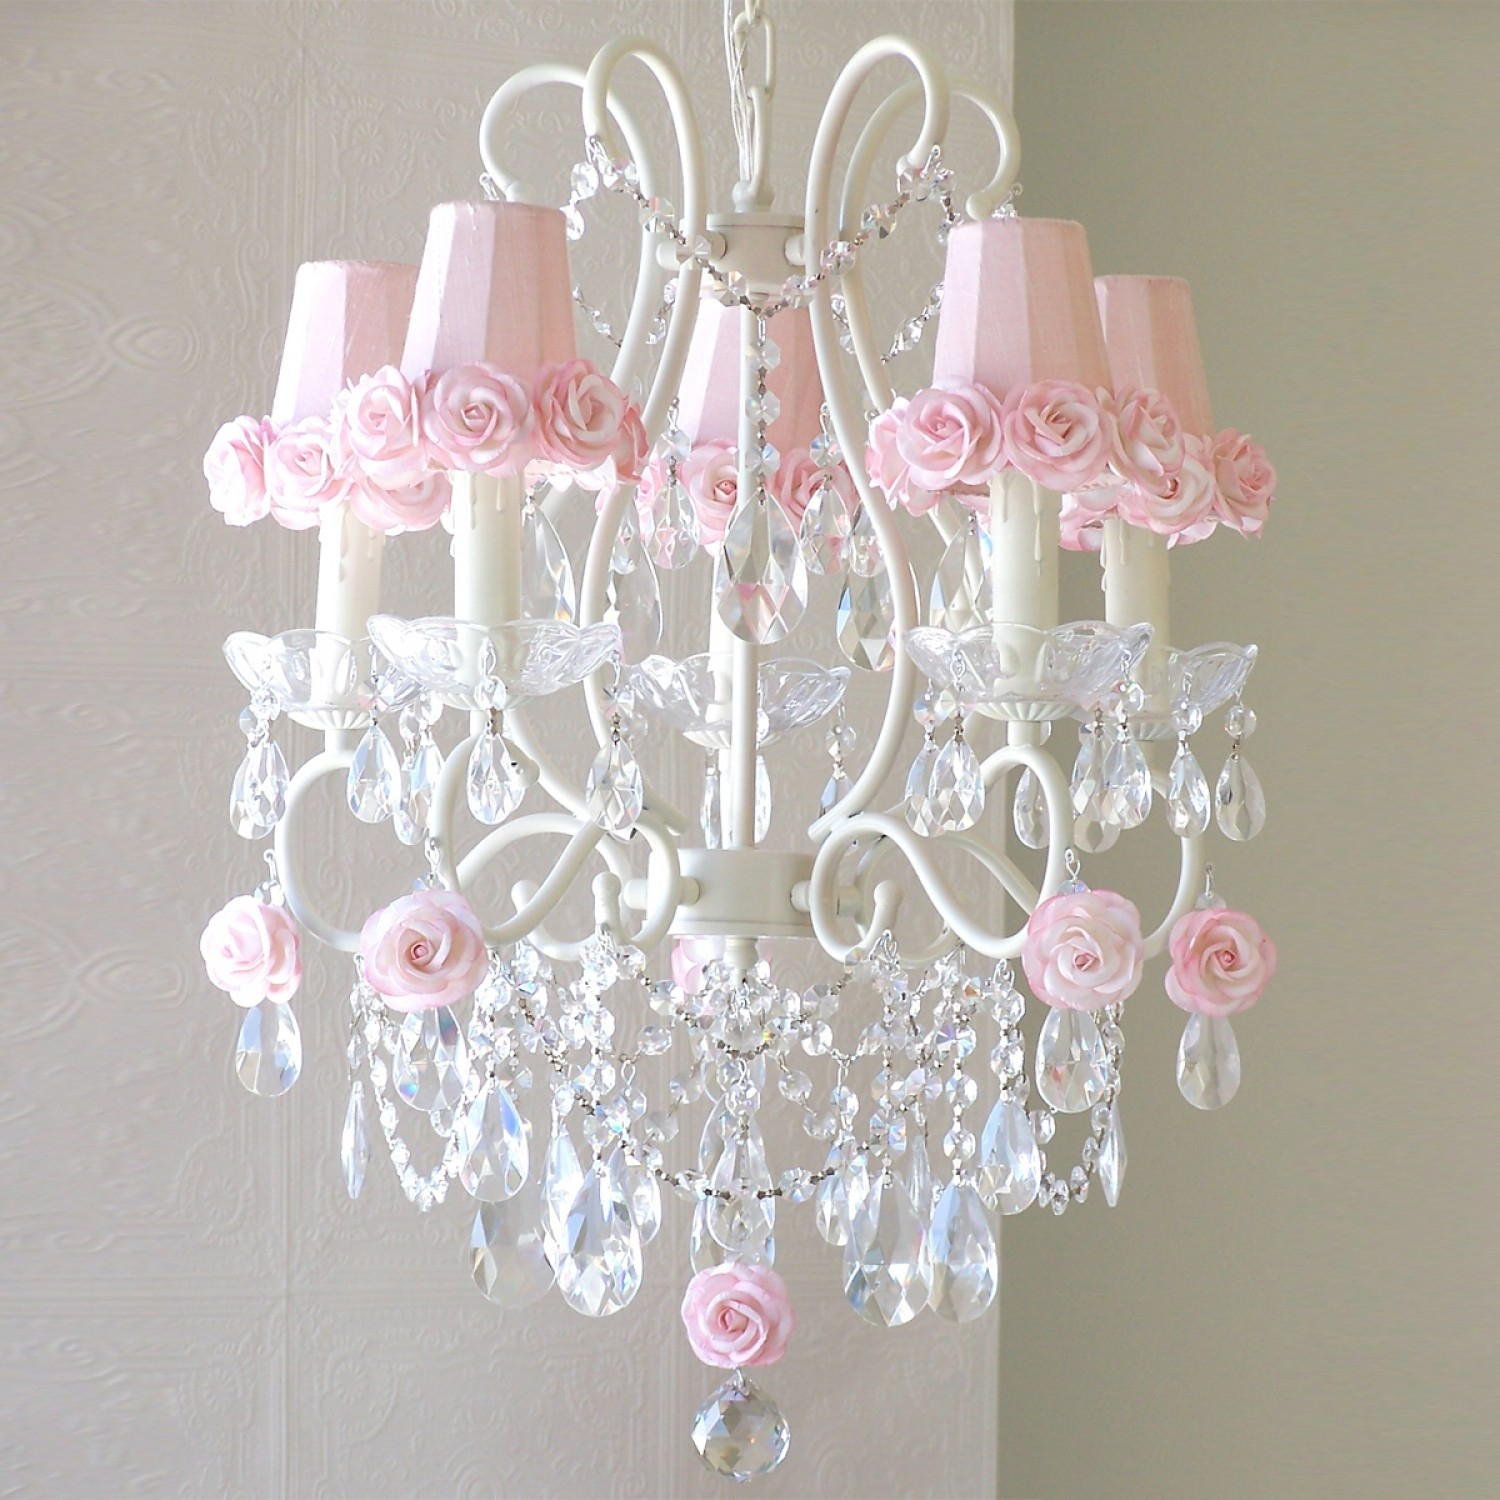 Awesome Lamp Shades For Chandeliers Chandelier From The Elegant In Lampshades For Chandeliers (Image 1 of 25)